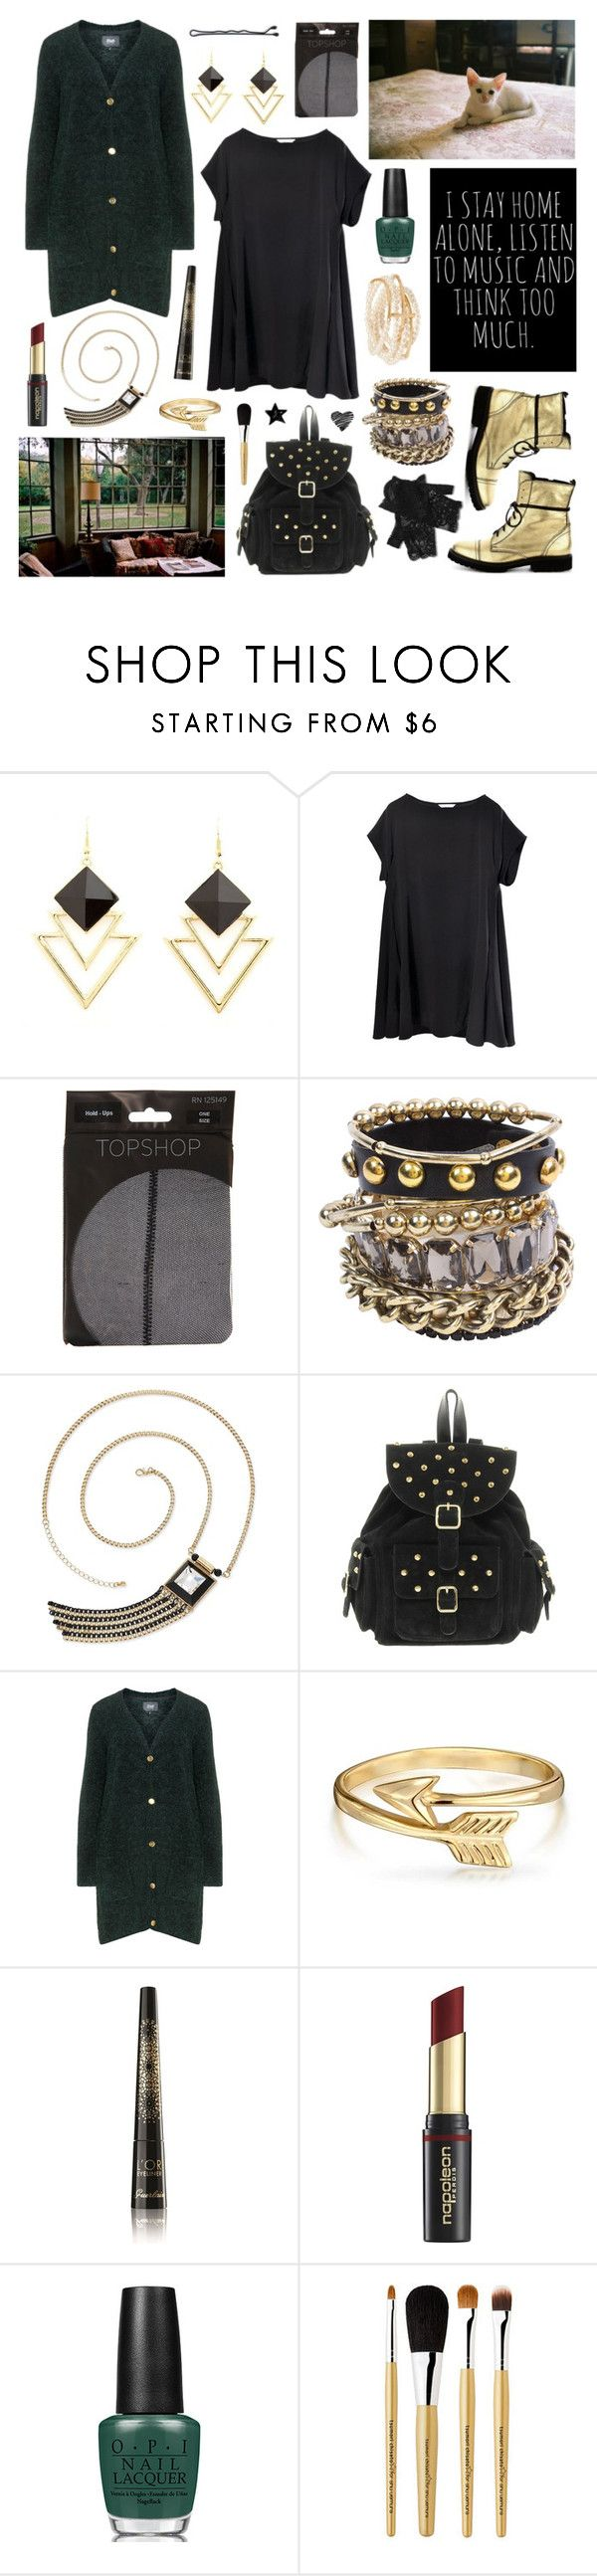 """you know that it's you"" by surma ❤ liked on Polyvore featuring Charlotte Russe, CENA, ASOS, Bar III, Zizzi, Bling Jewelry, Guerlain, David Jones, OPI and Guide London"